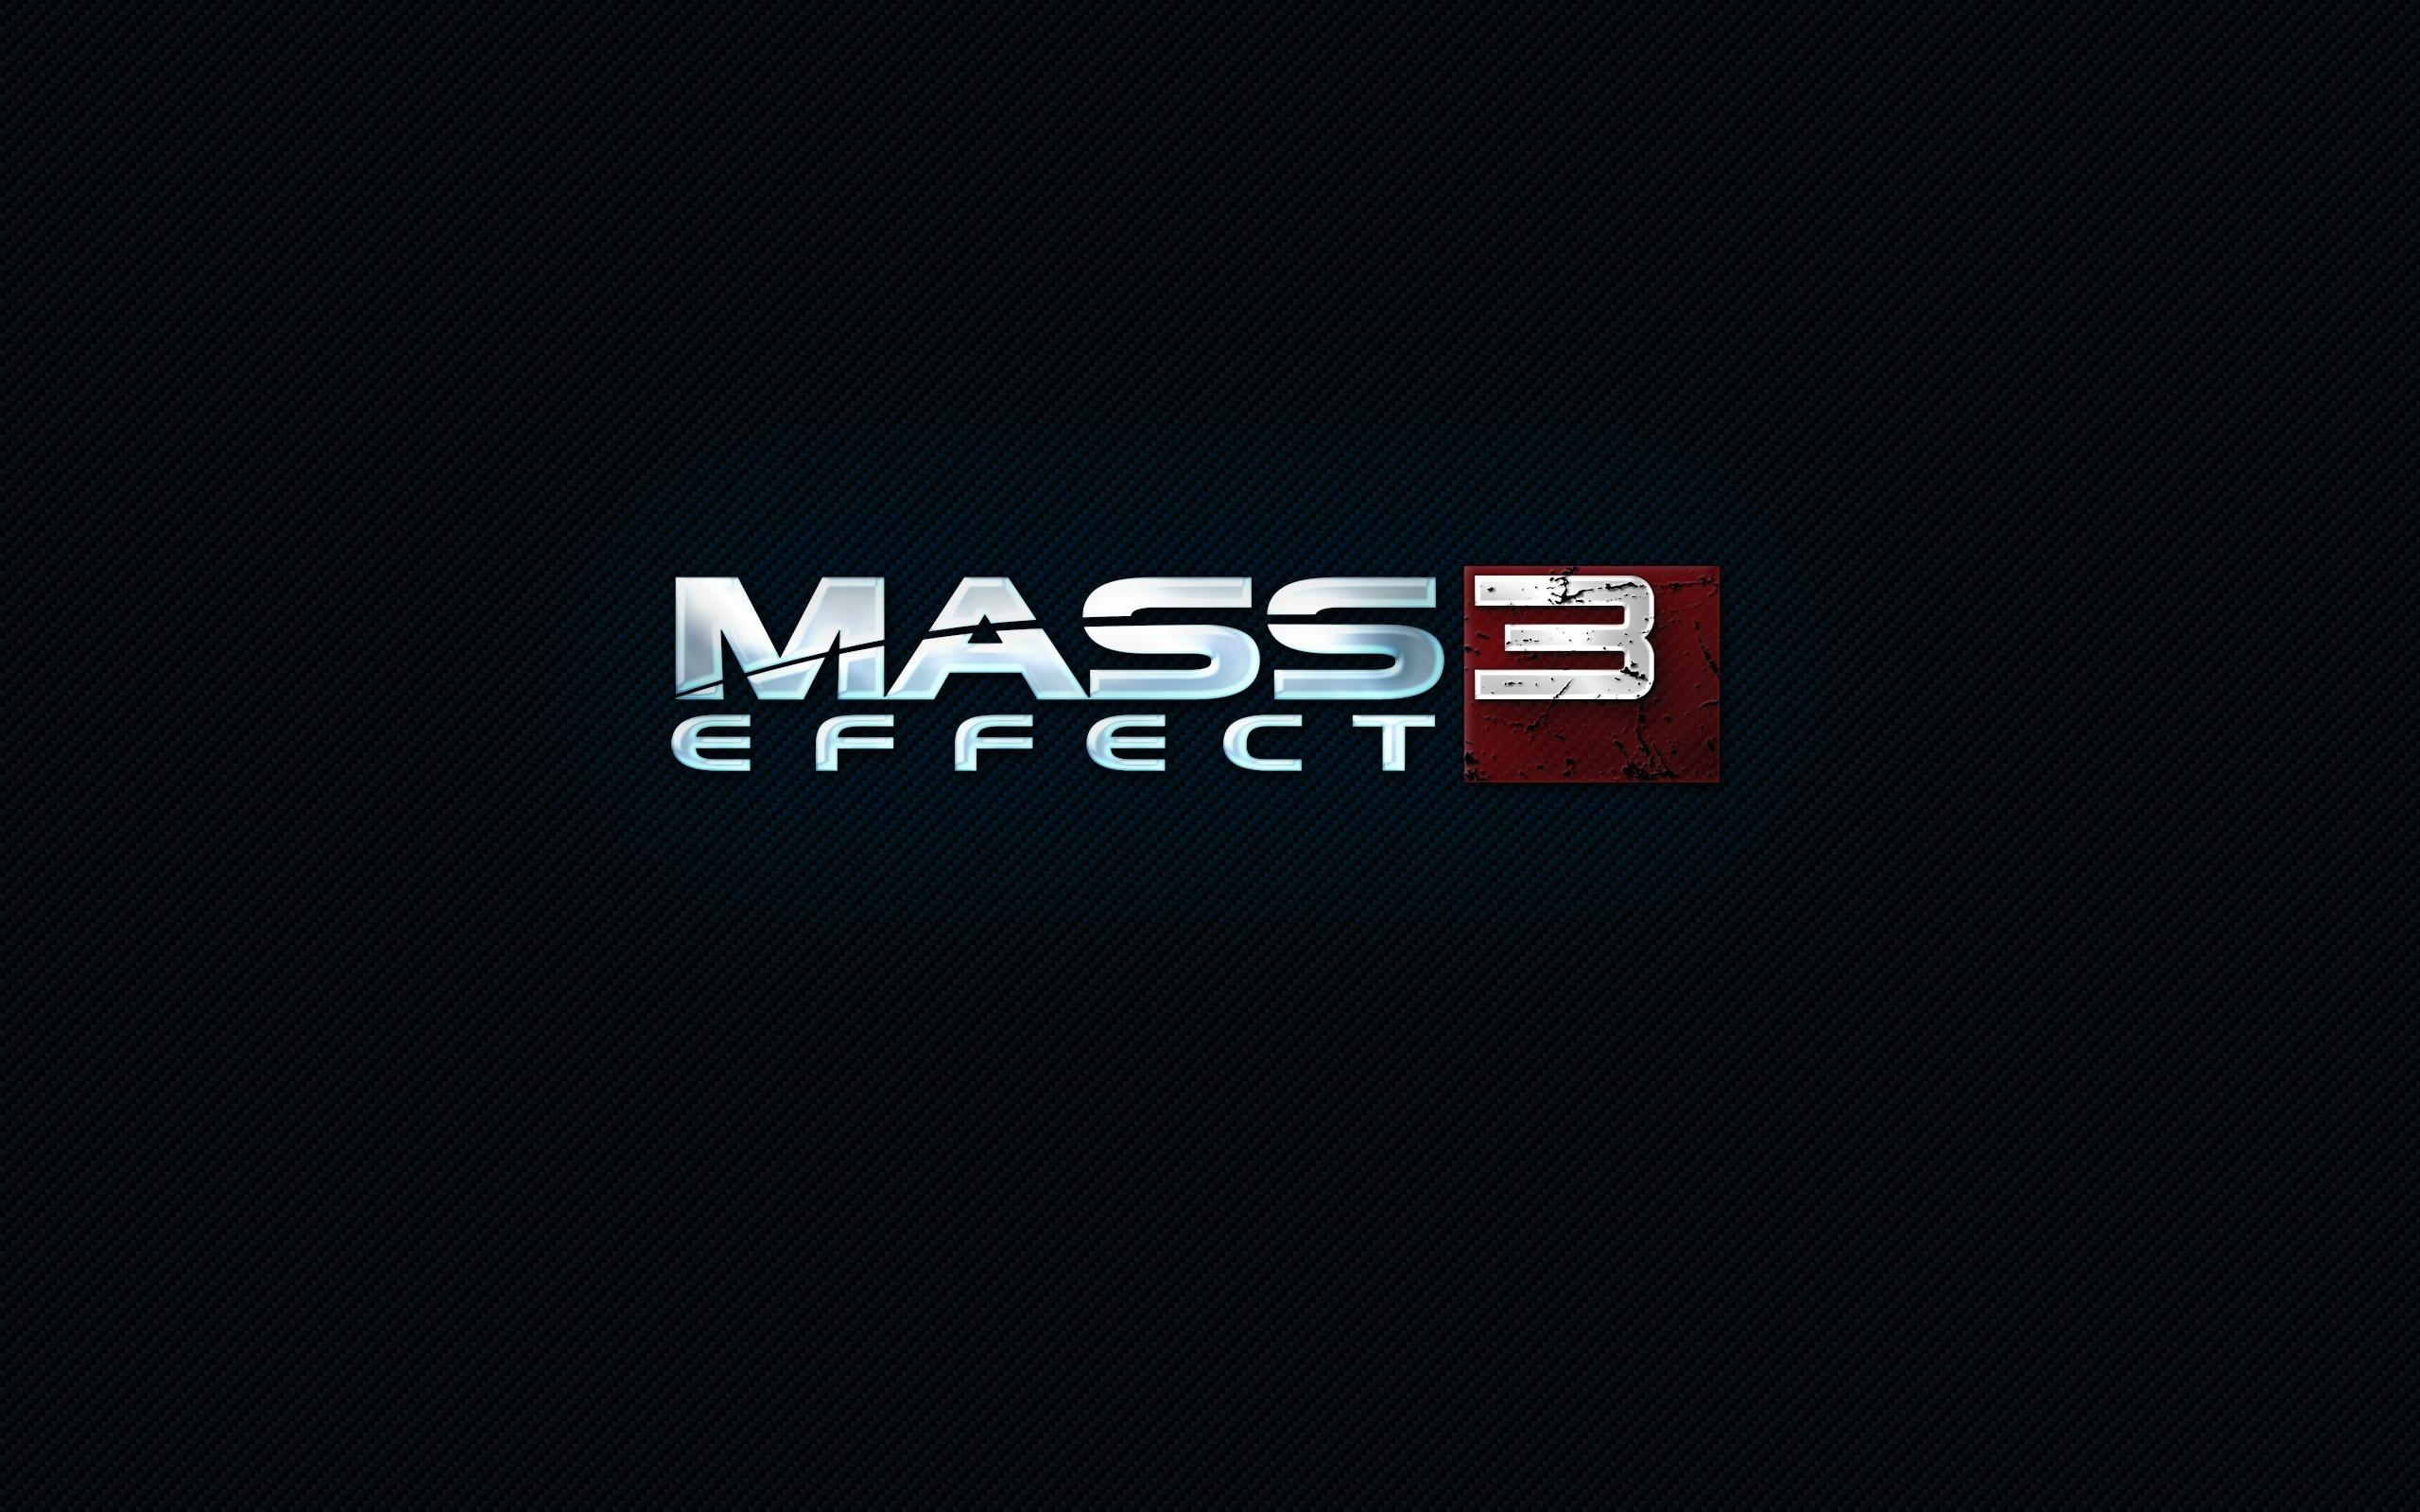 Обои Mass effect 3, carbon 2560x1600